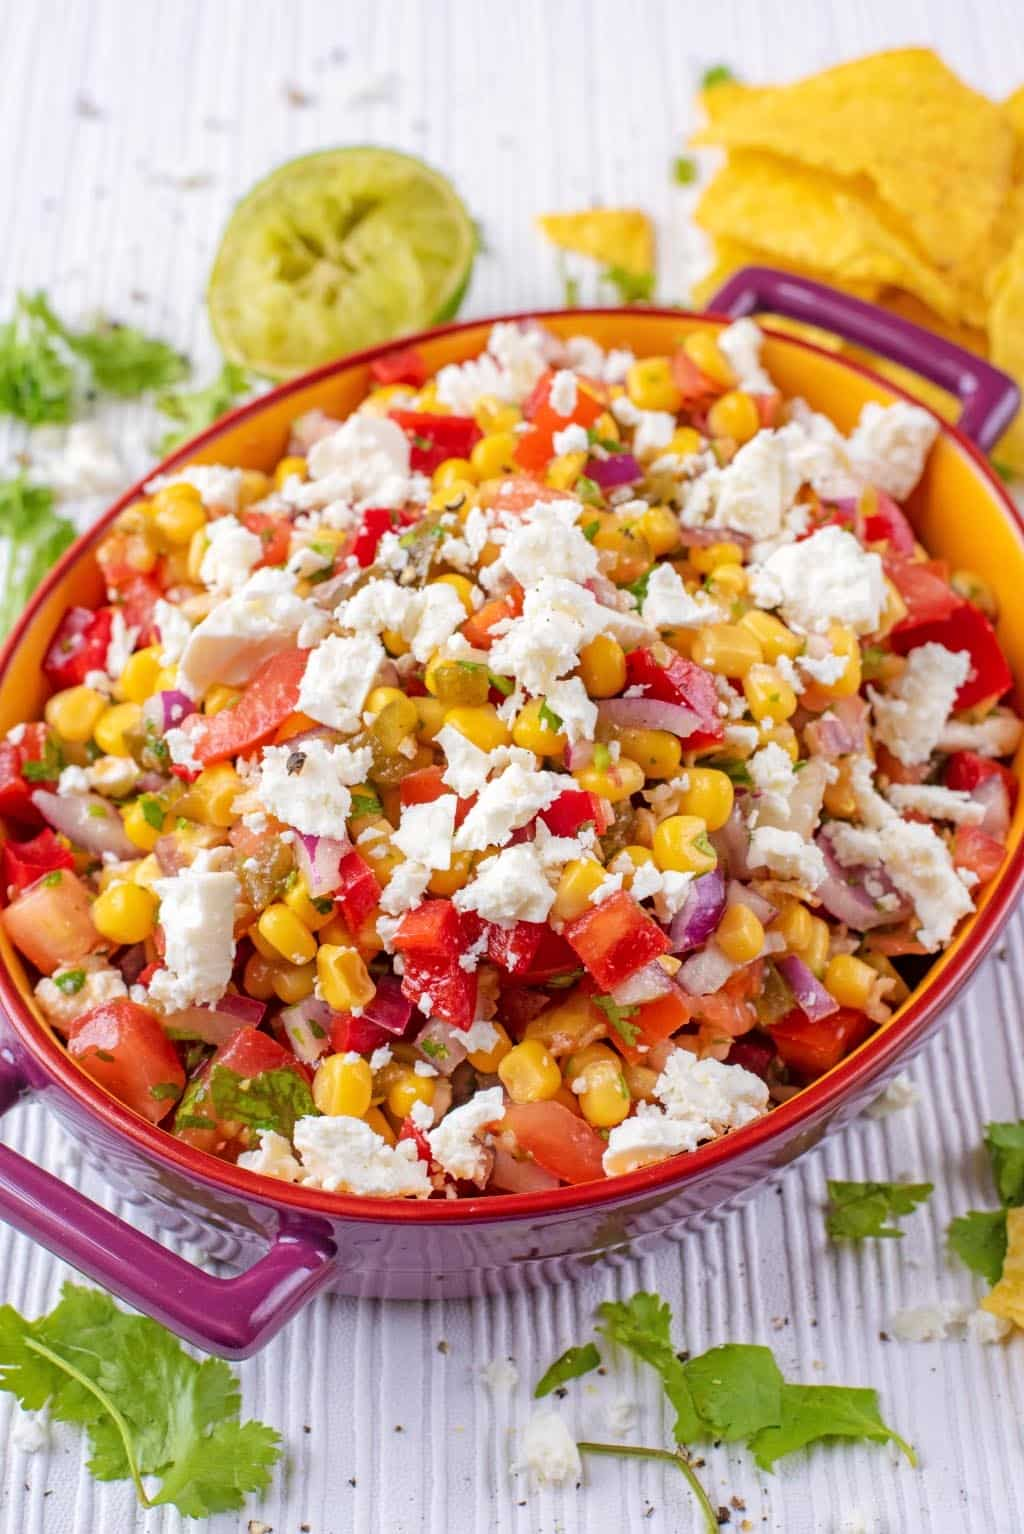 An oval dish containing a salsa of mixed corn, peppers, tomato and cheese